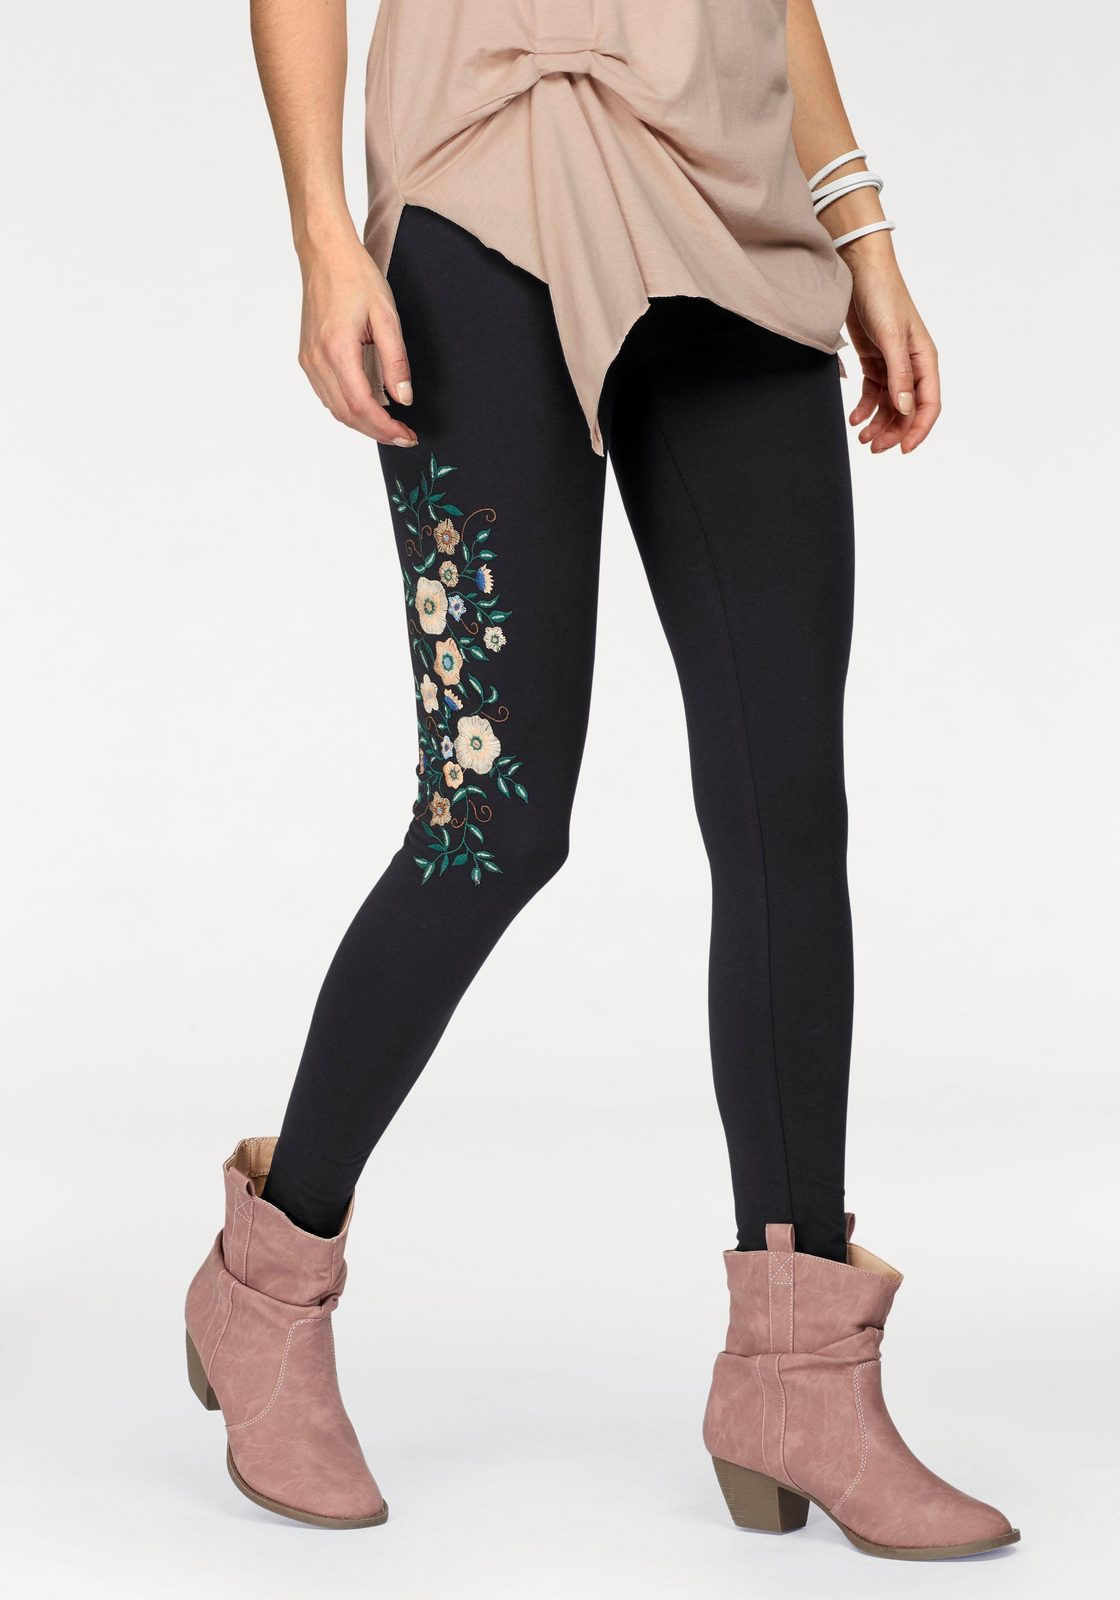 Boysen´s Leggings mit bunter Blumen-Stickerei